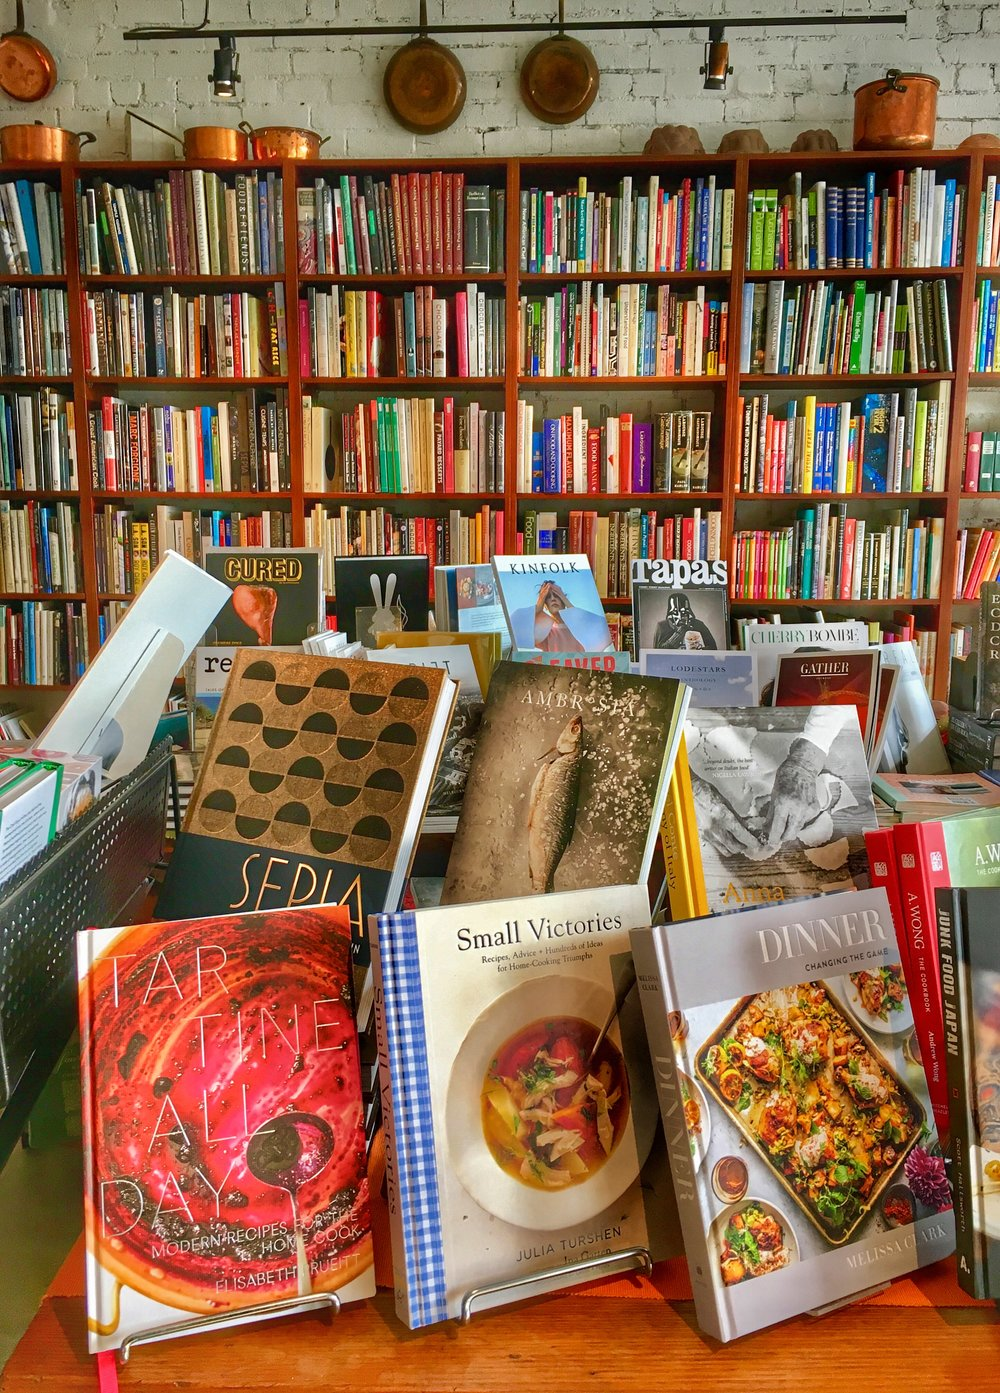 - Market Location/Hours:Address: 509 Elizabeth Street, MelbourneClosed Monday & Wednesday; Tuesday/Thursday 6 a.m. - 2 p.m.; Friday 6 a.m. - 5 p.m.; Saturday 6 a.m.- 3 p.m.; Sunday 9 a.m. - 4 p.m.Books for Cooks: Opens at 9 a.m. seven days a week; 10 a.m. on Sundays.